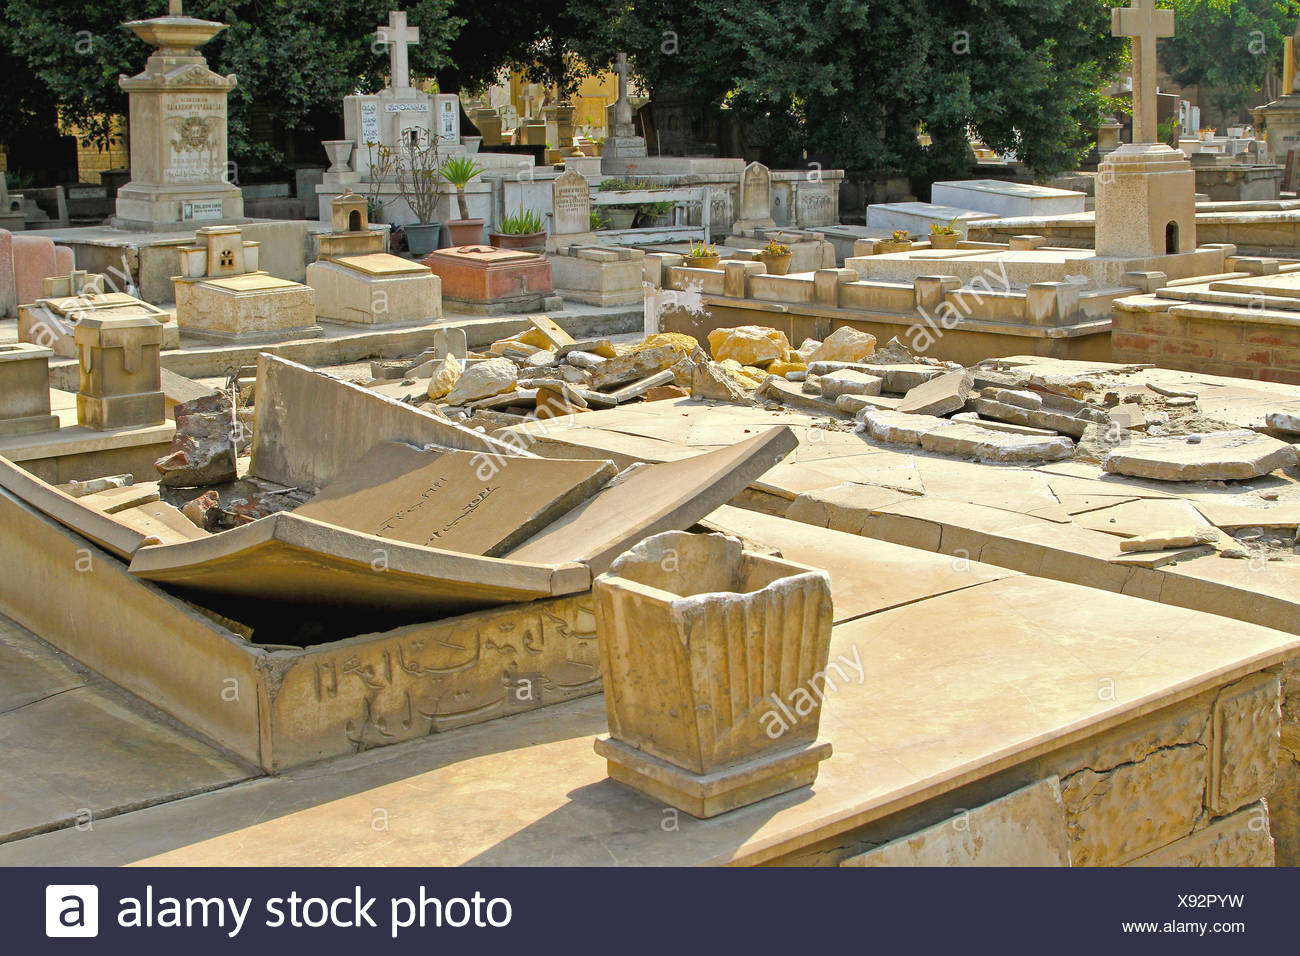 Desecrated Tombs - Stock Image